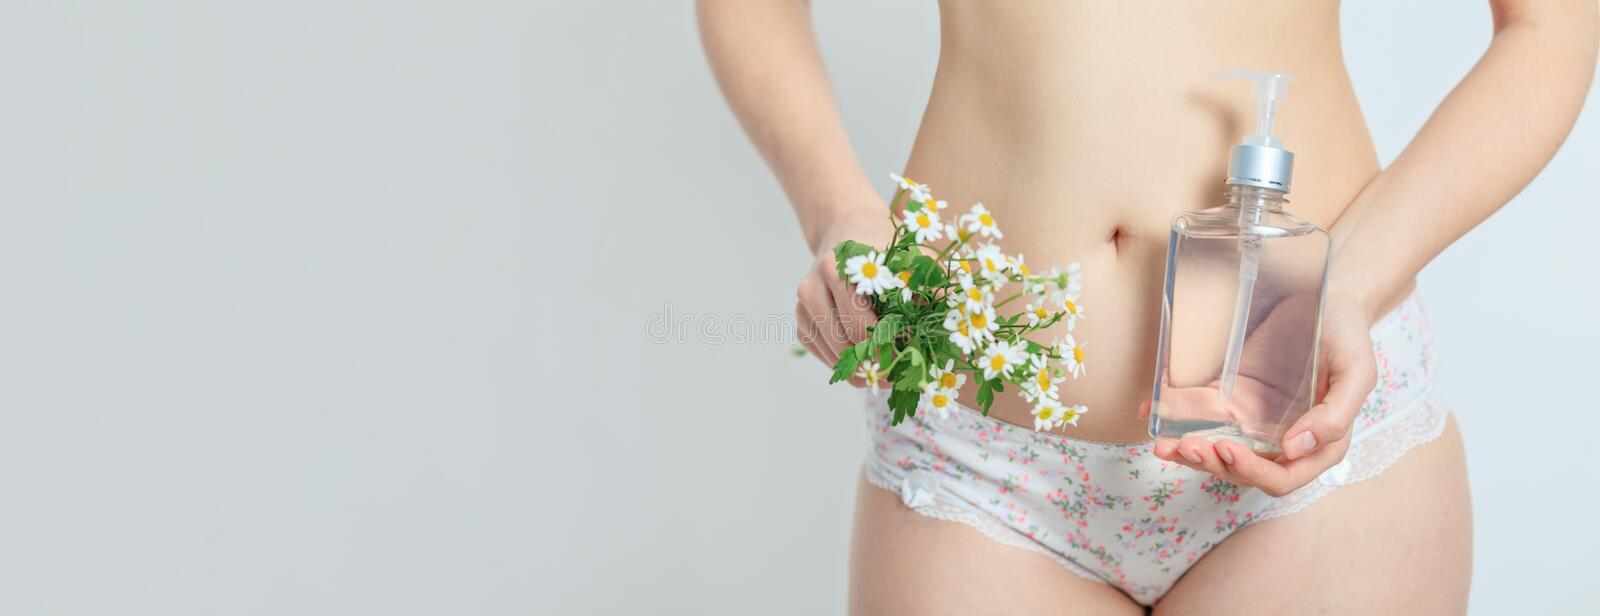 A woman dressed in panties holds chamomile flowers and a bottle with gel for care in her hands, close-up. women`s health stock photo